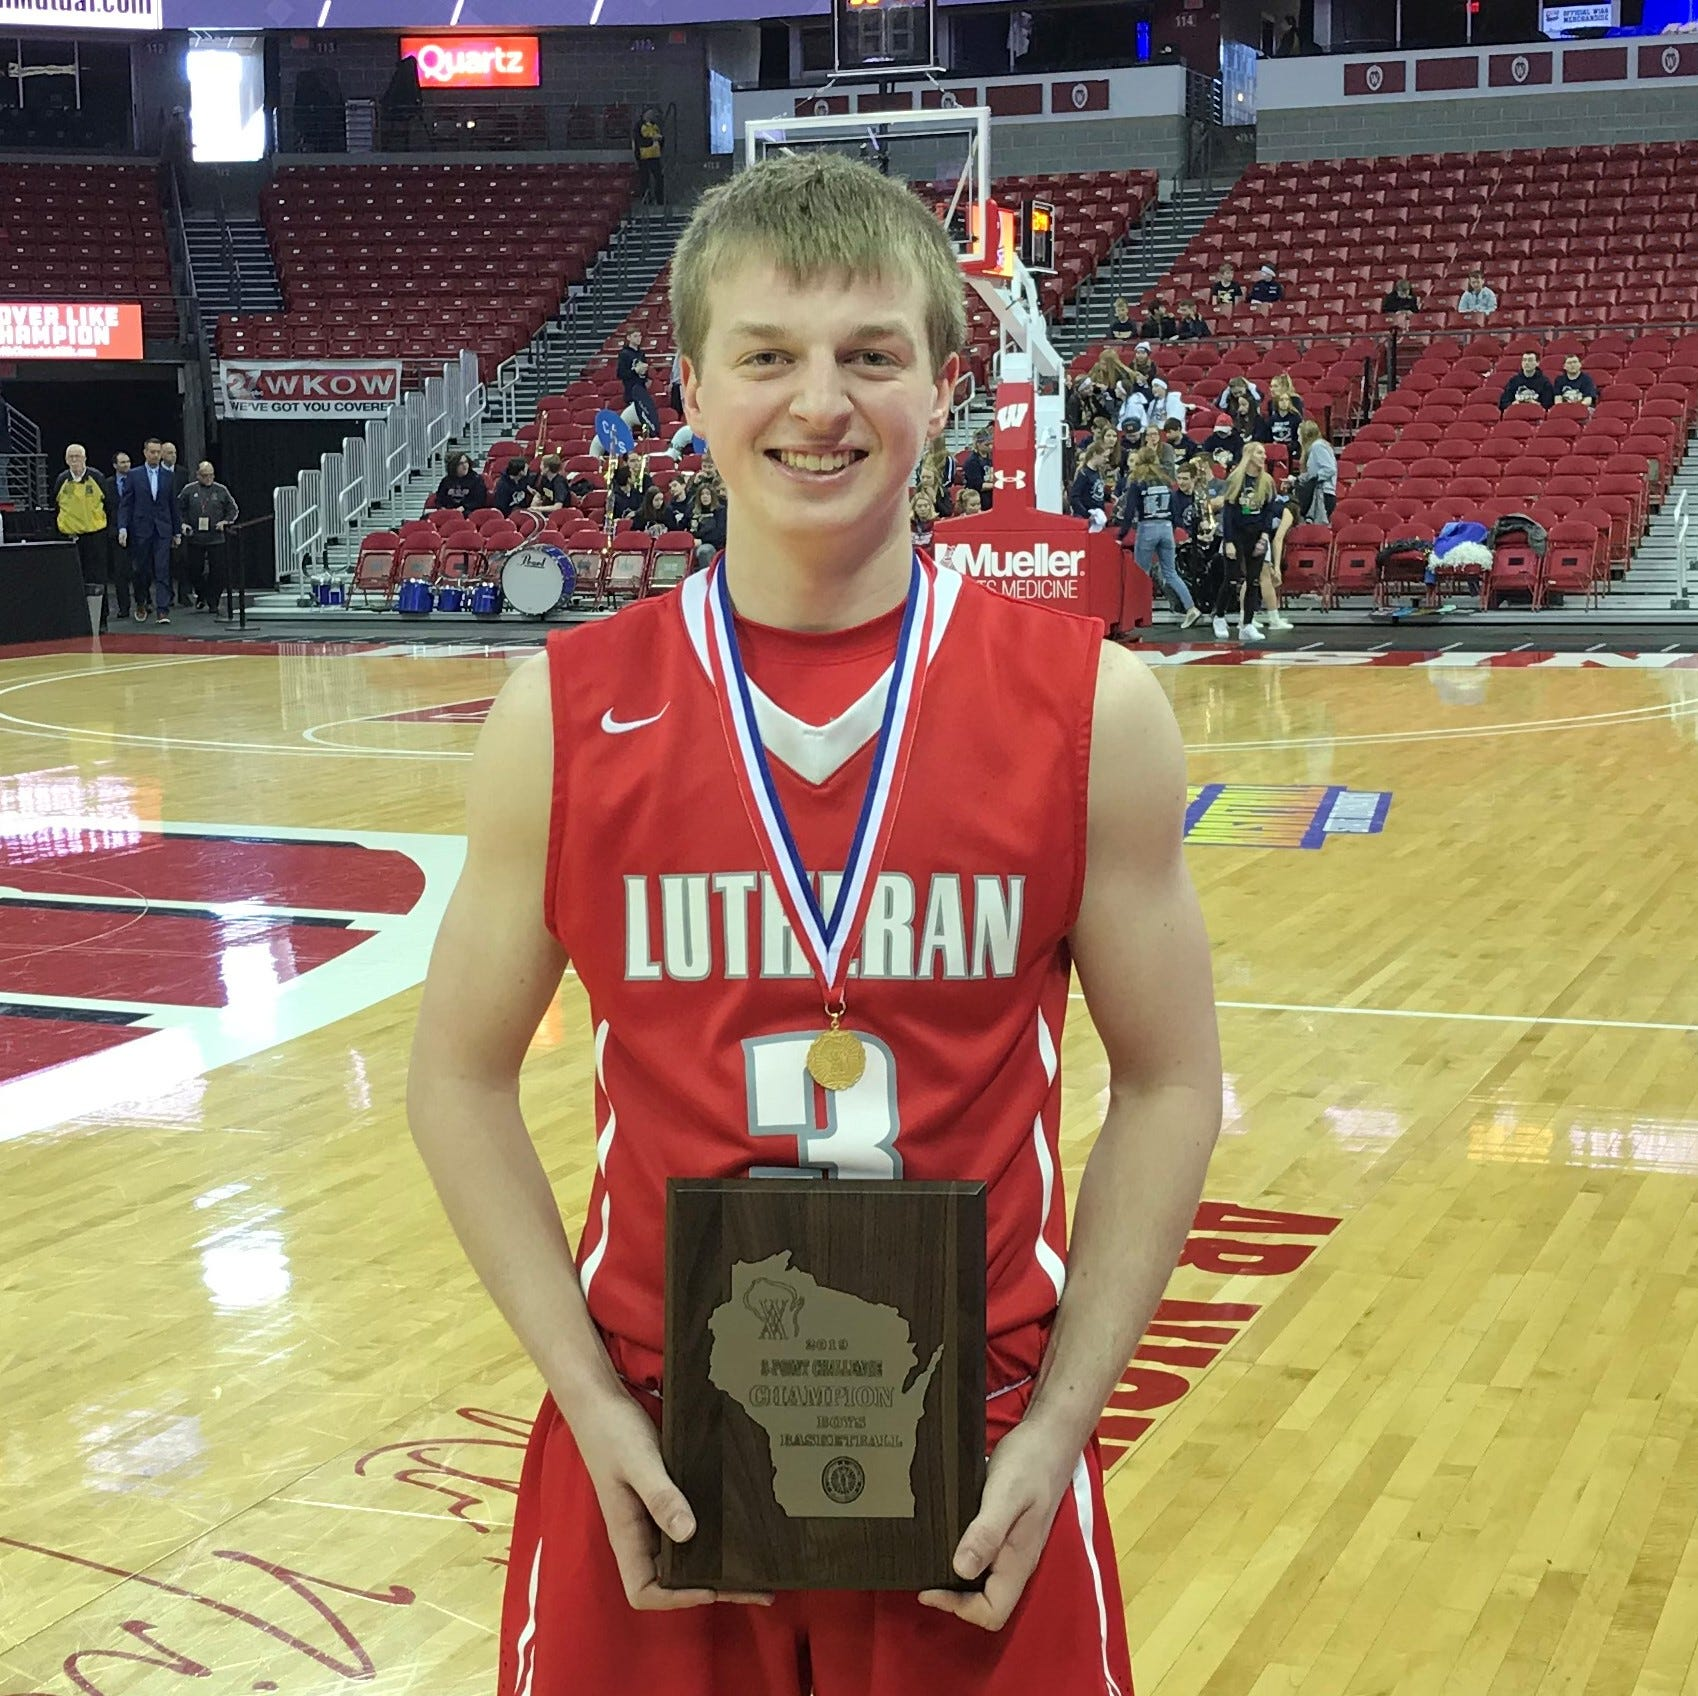 WIAA state basketball: Manitowoc Lutheran's Zastrow wins 3-Point Challenge